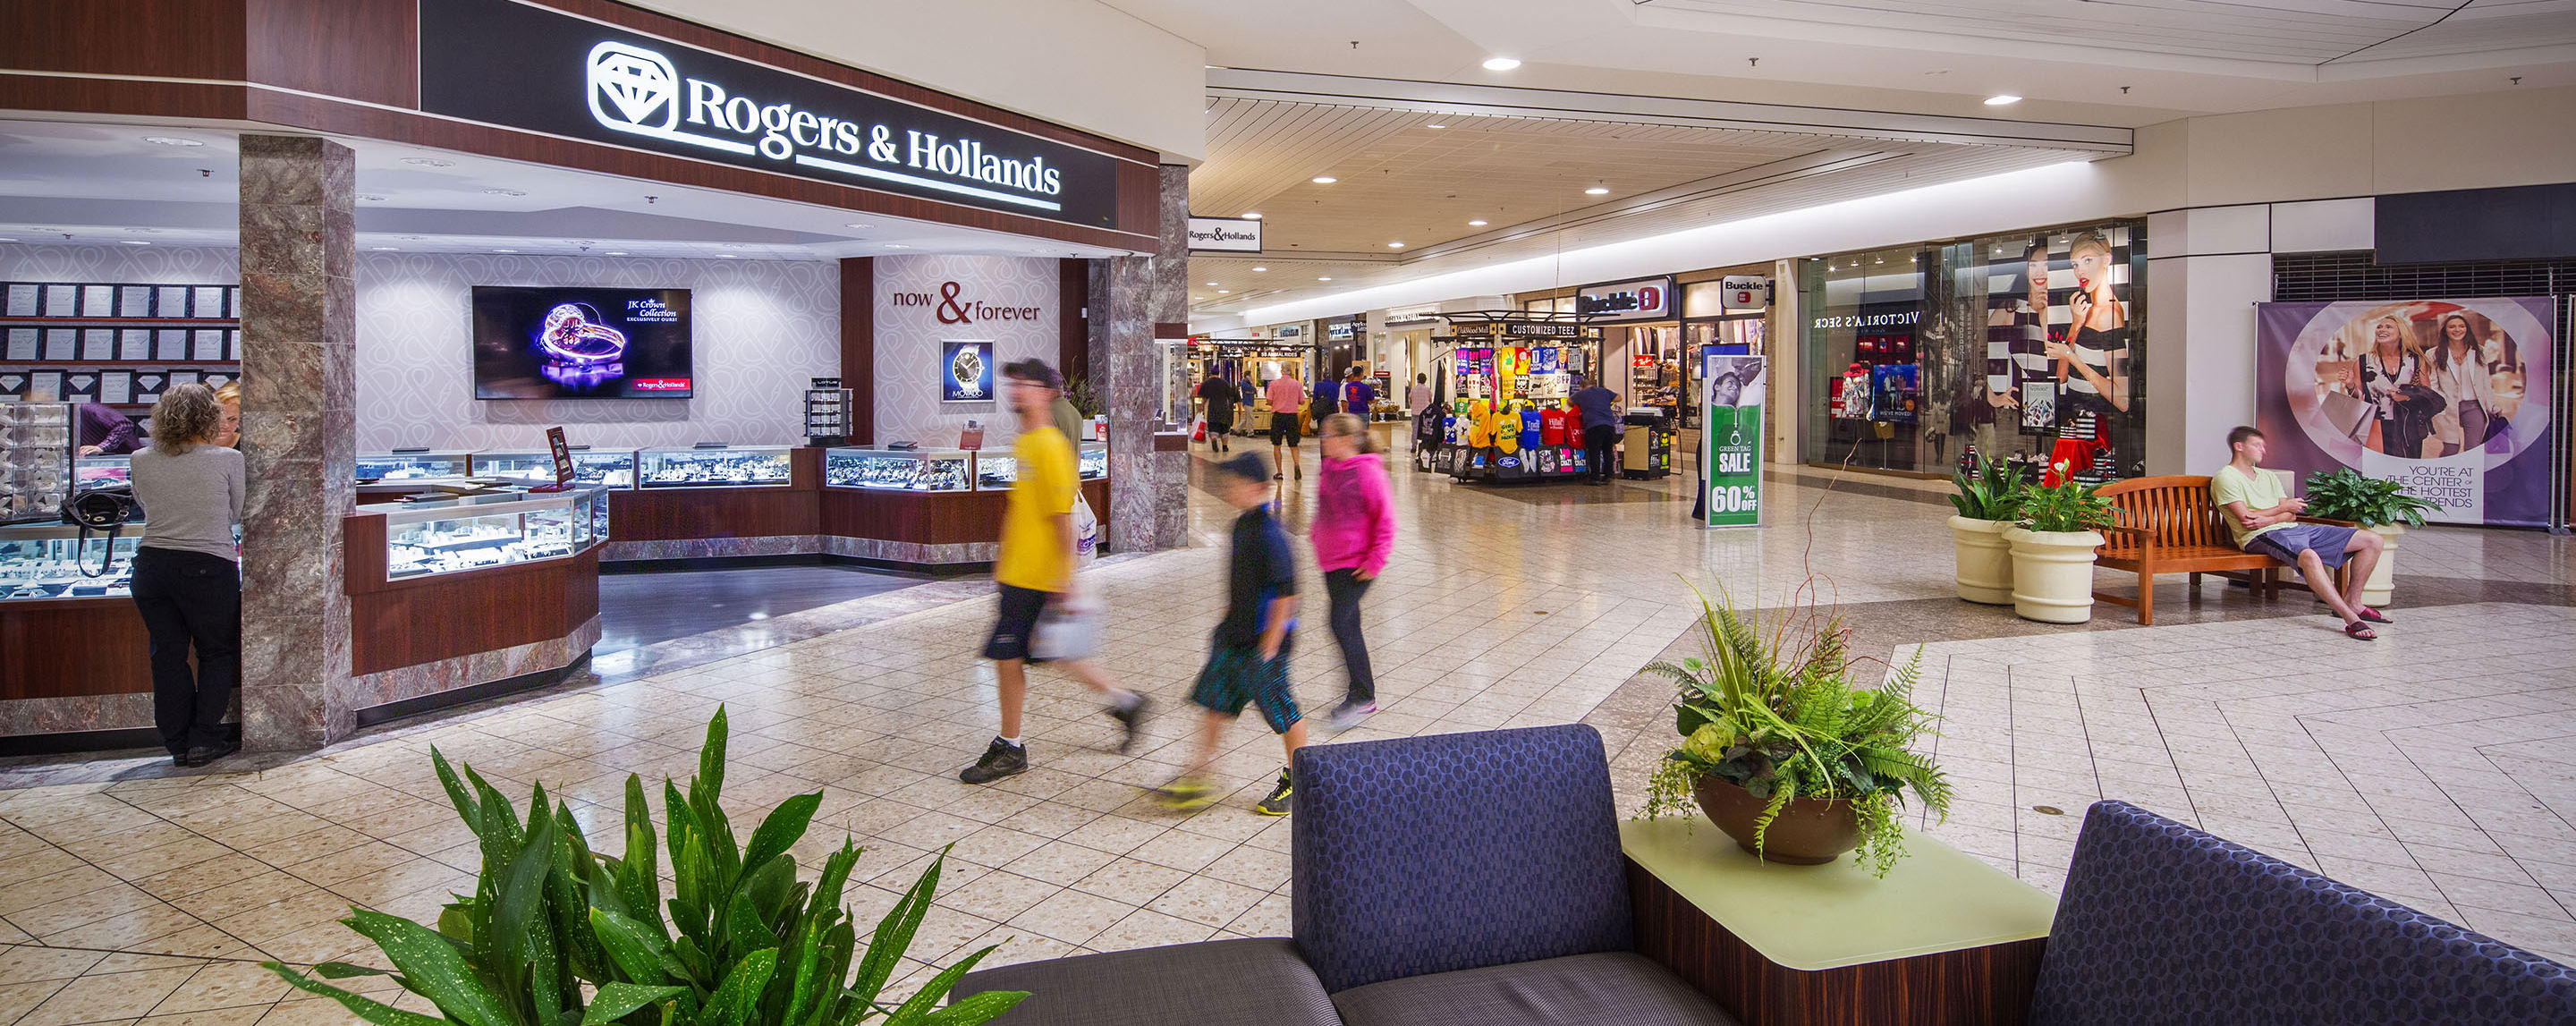 A common area inside the OakWood Mall offers visitors a place to sit and relax while they shop.